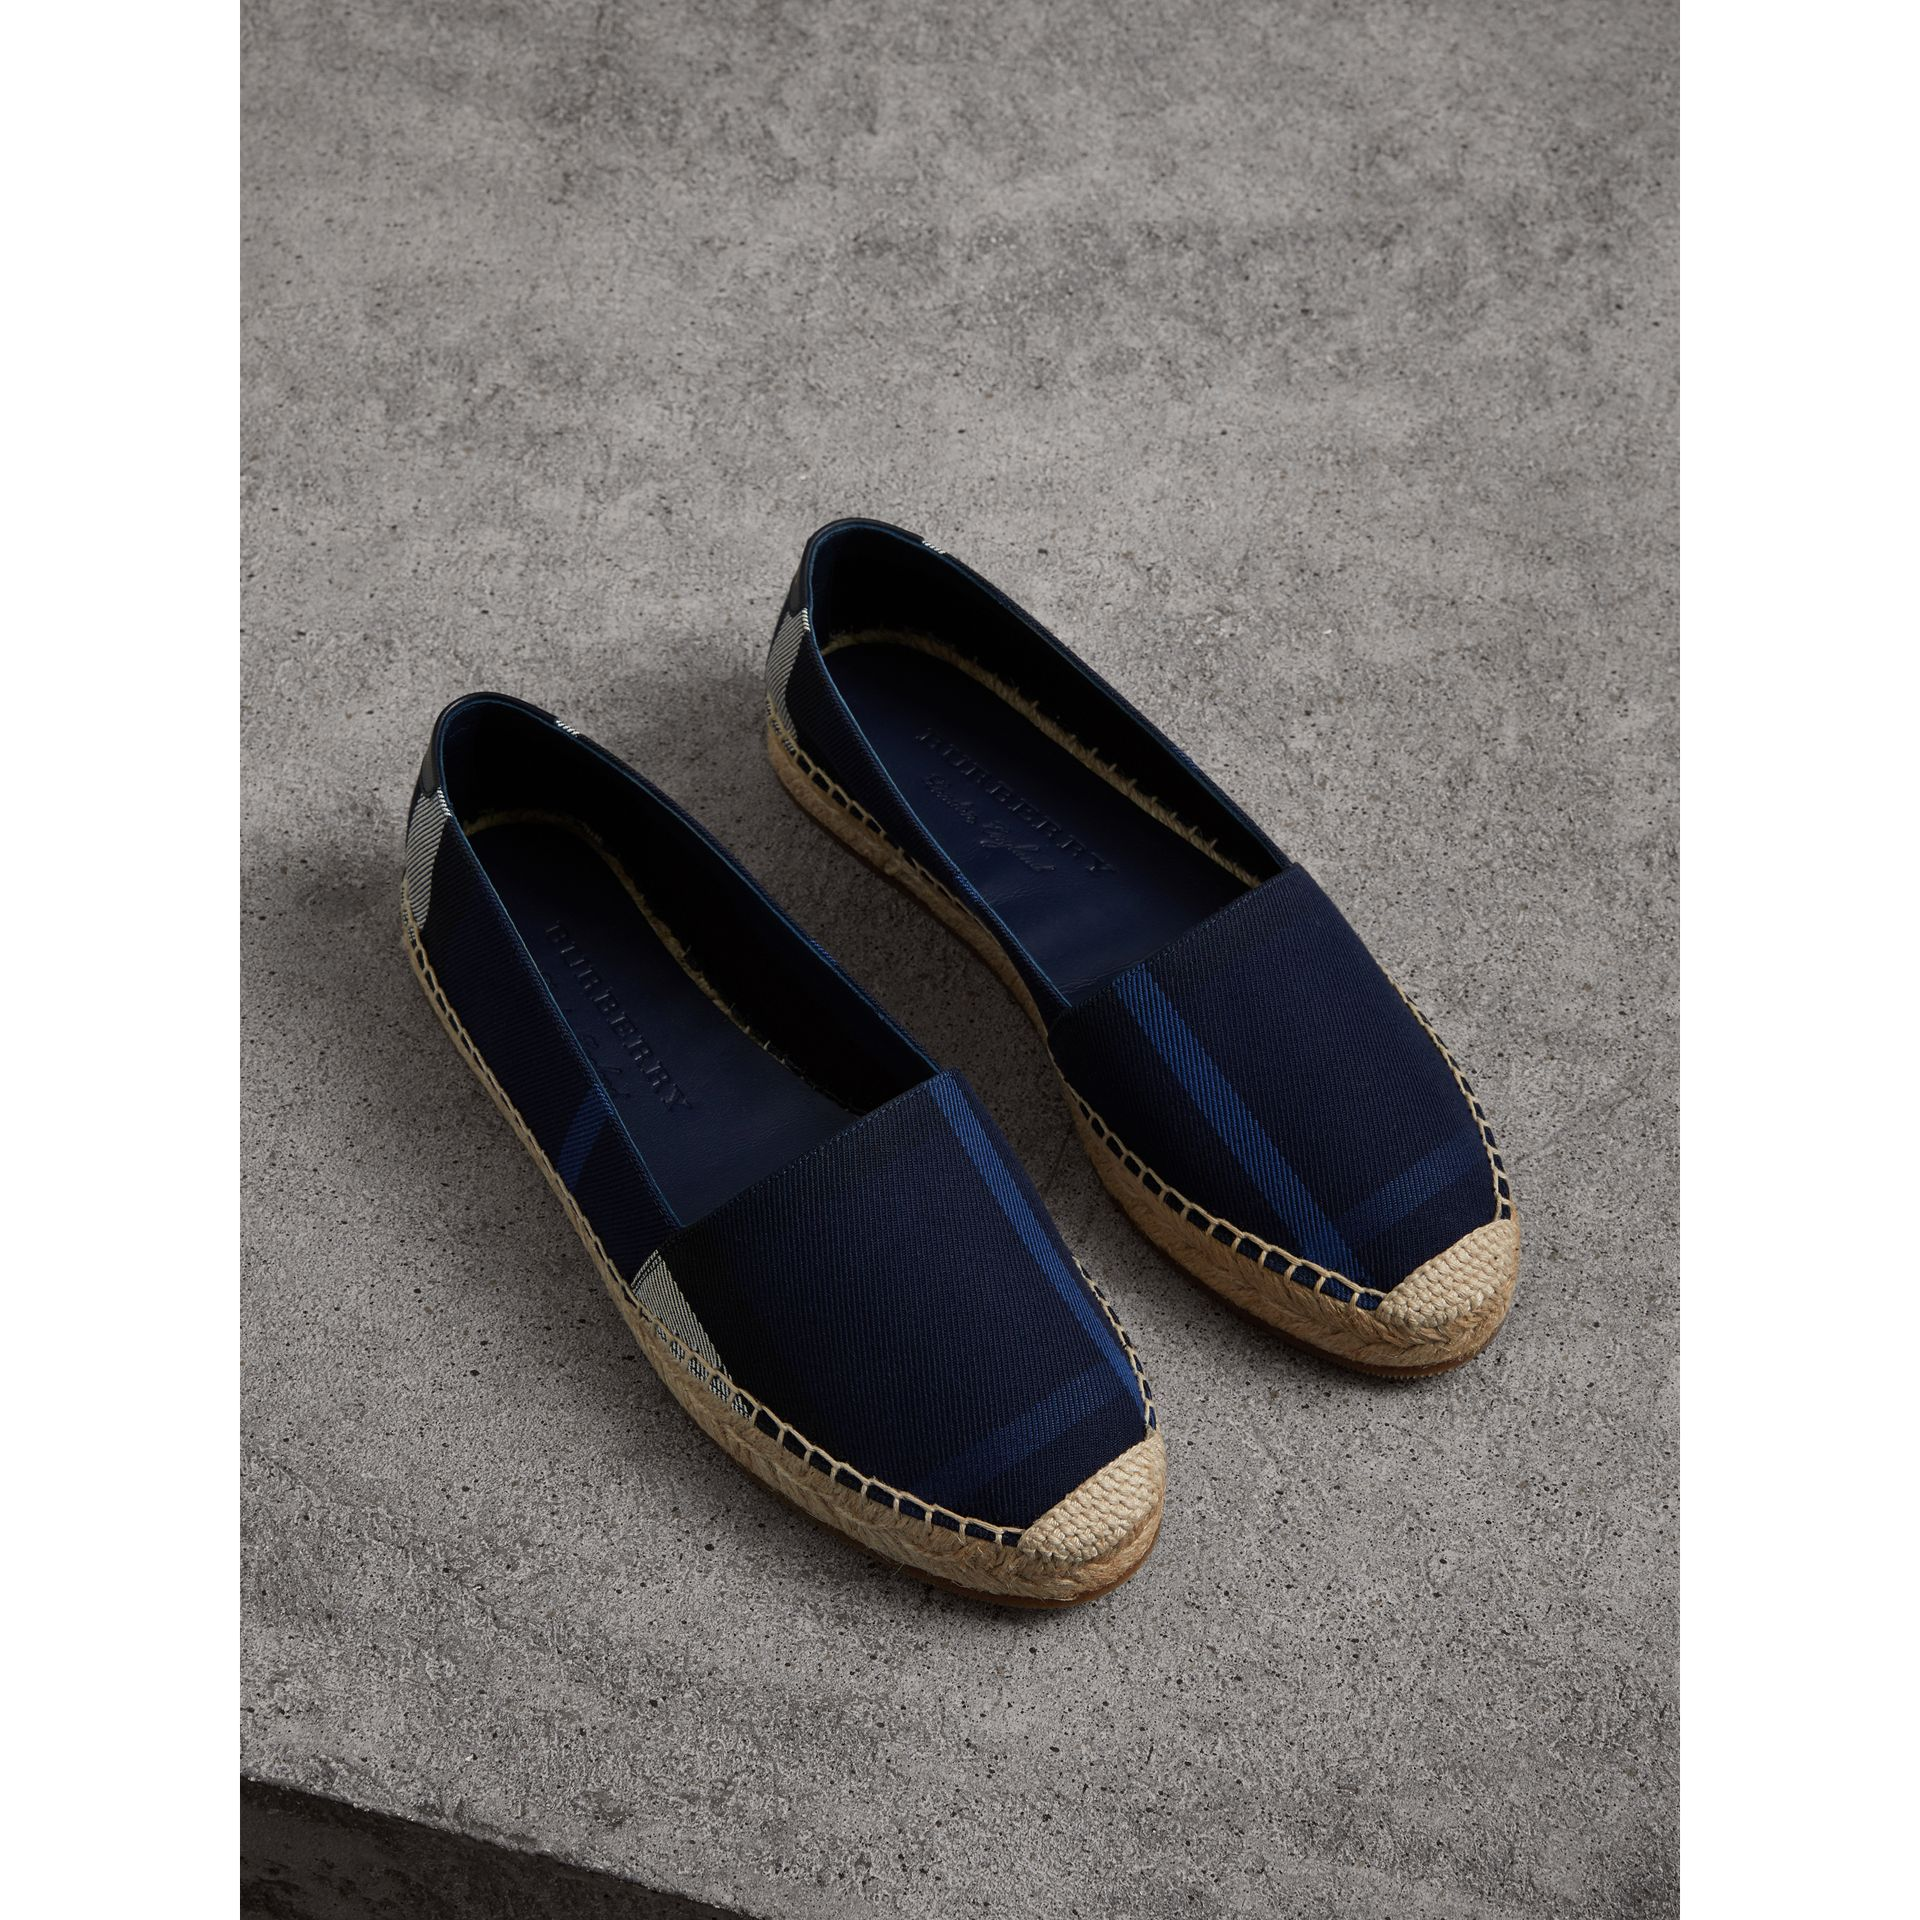 Check Cotton Espadrilles in Indigo Blue - Women | Burberry - gallery image 1